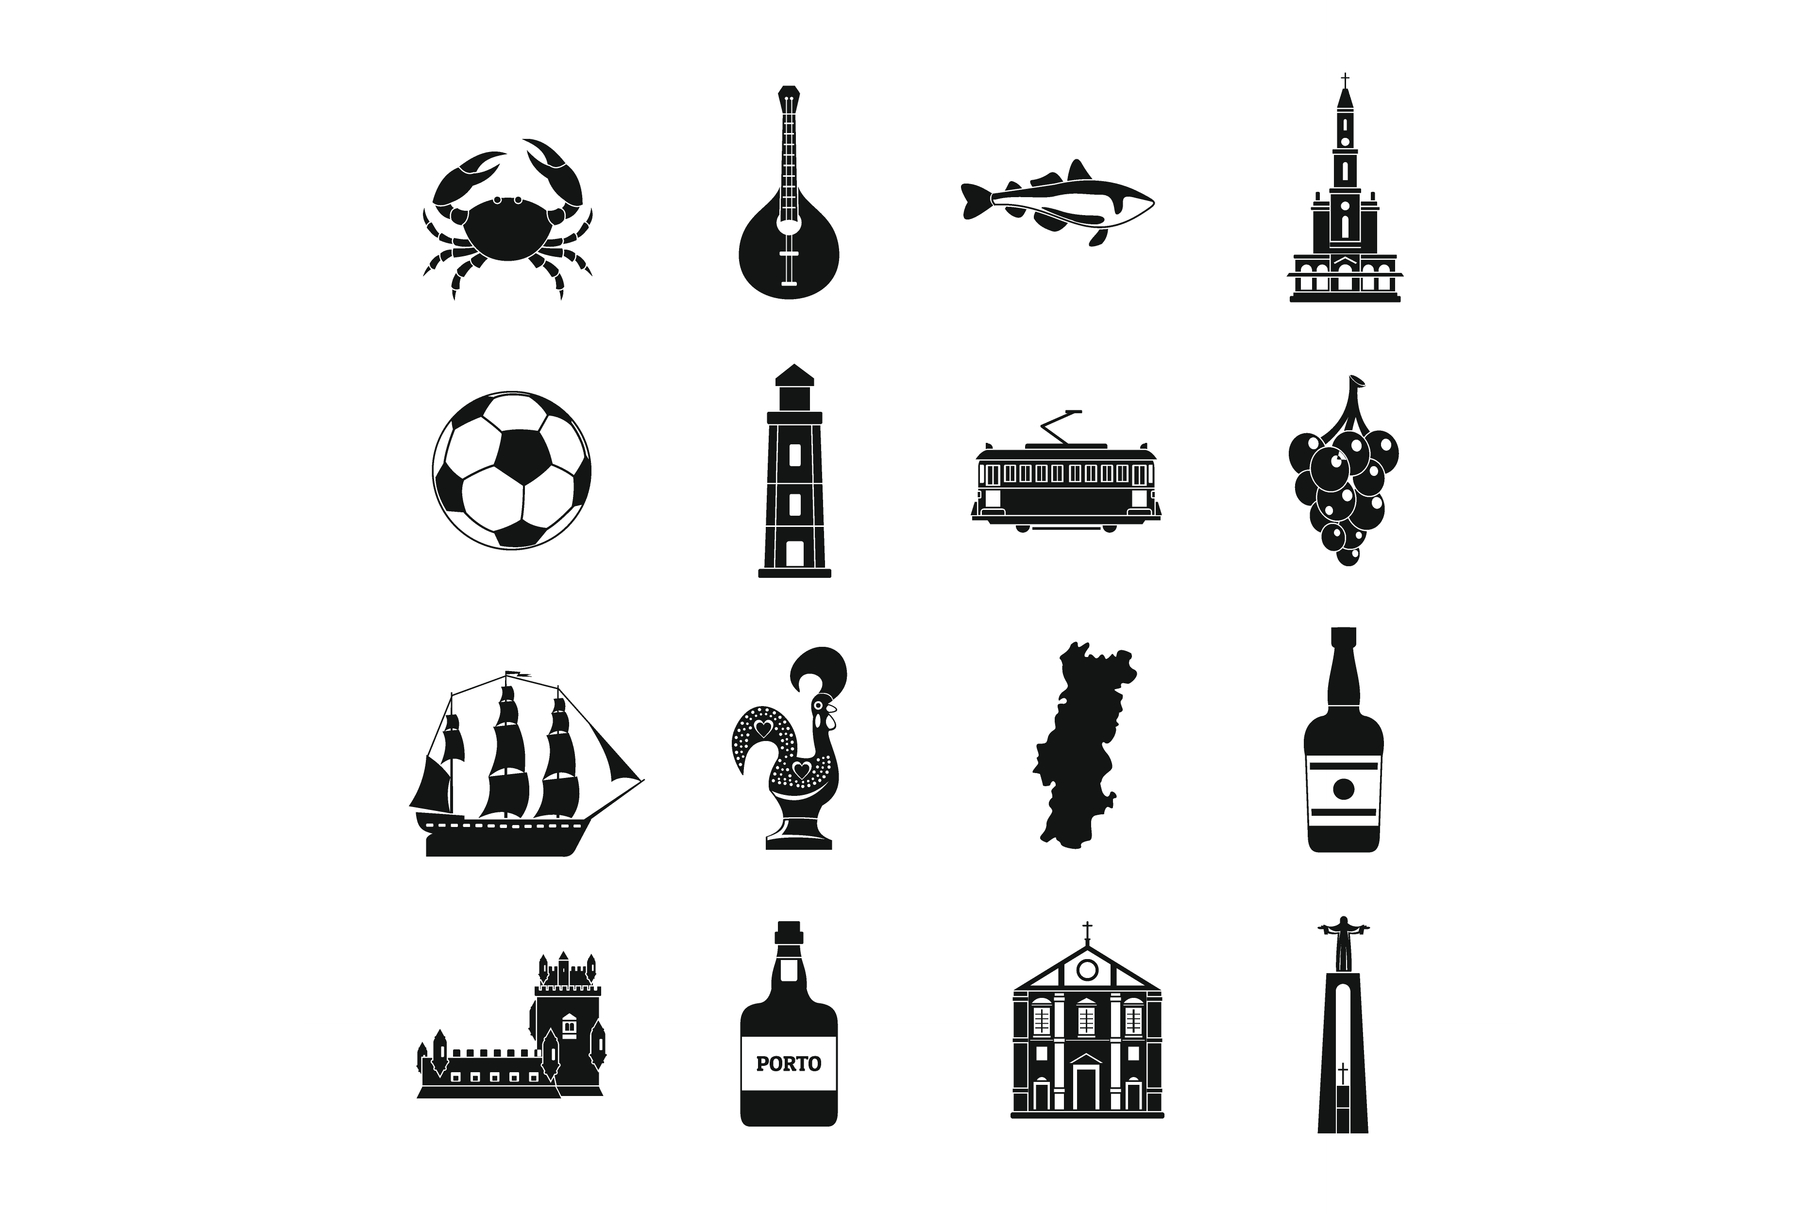 Portugal travel icons set, simple style example image 1